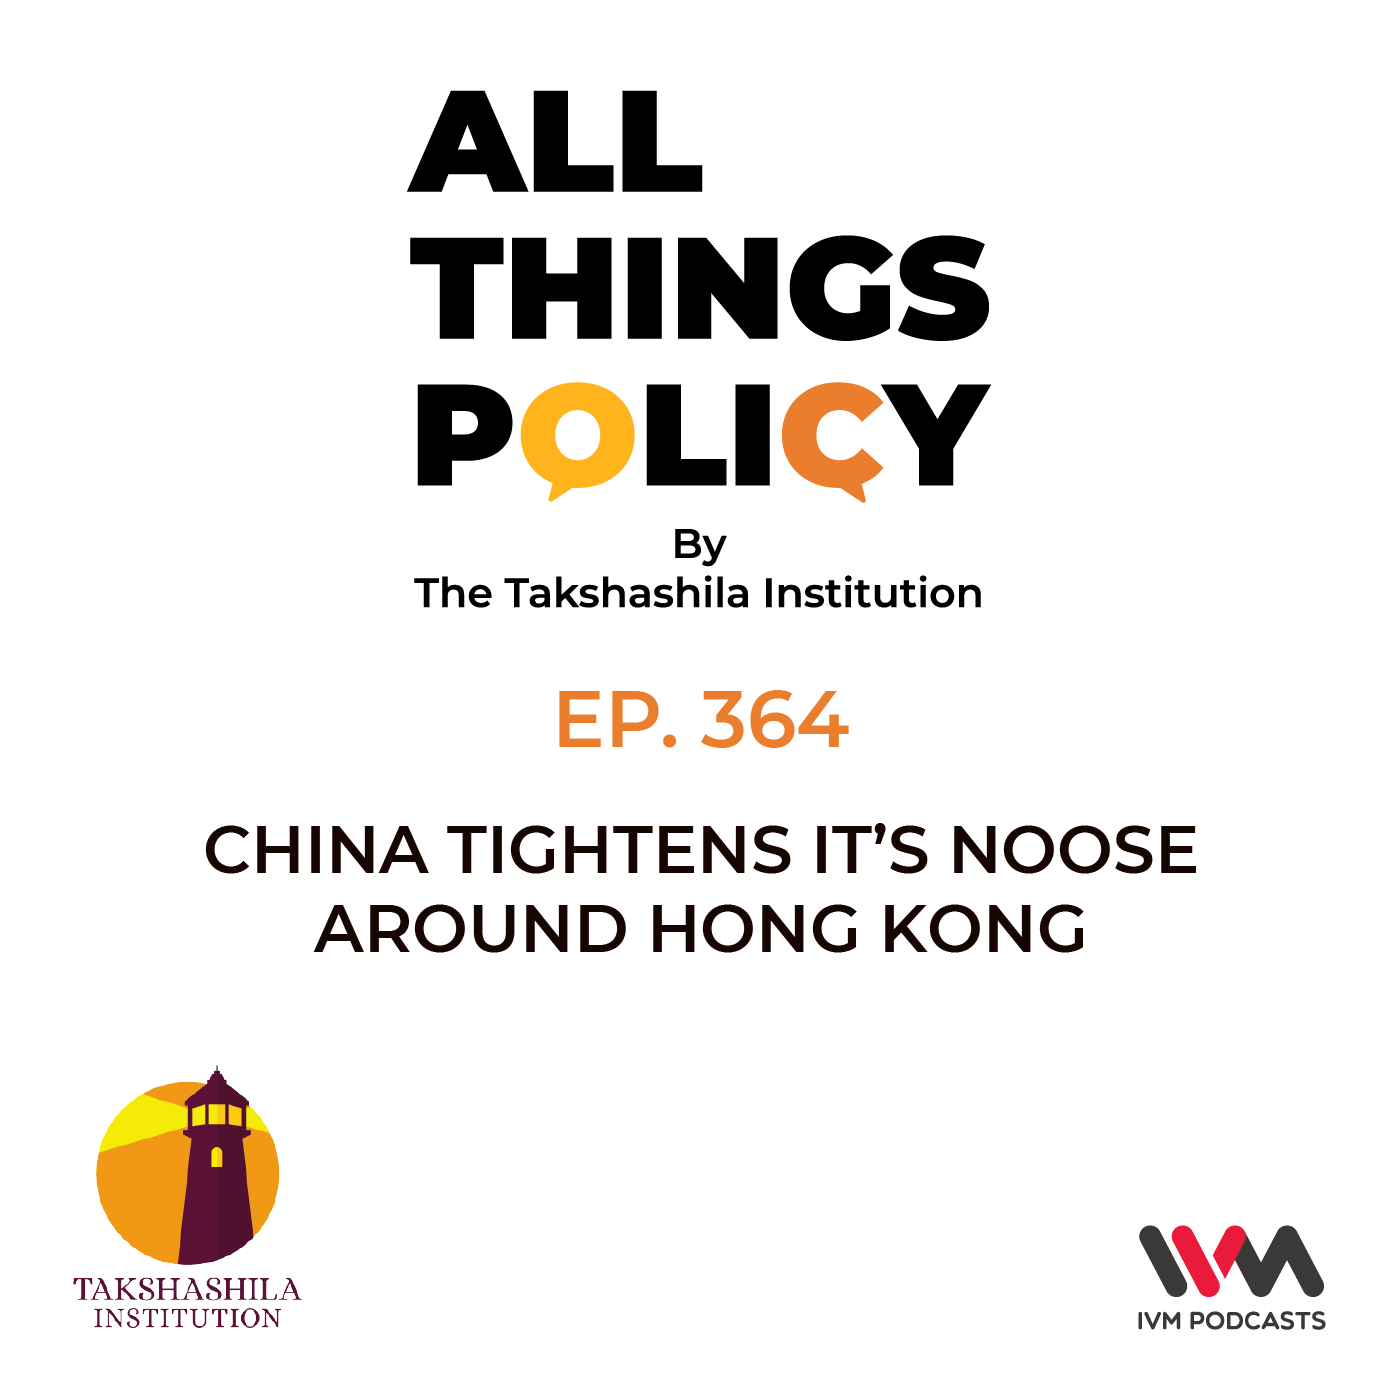 Ep. 364: China Tightens it Noose Around Hong Kong